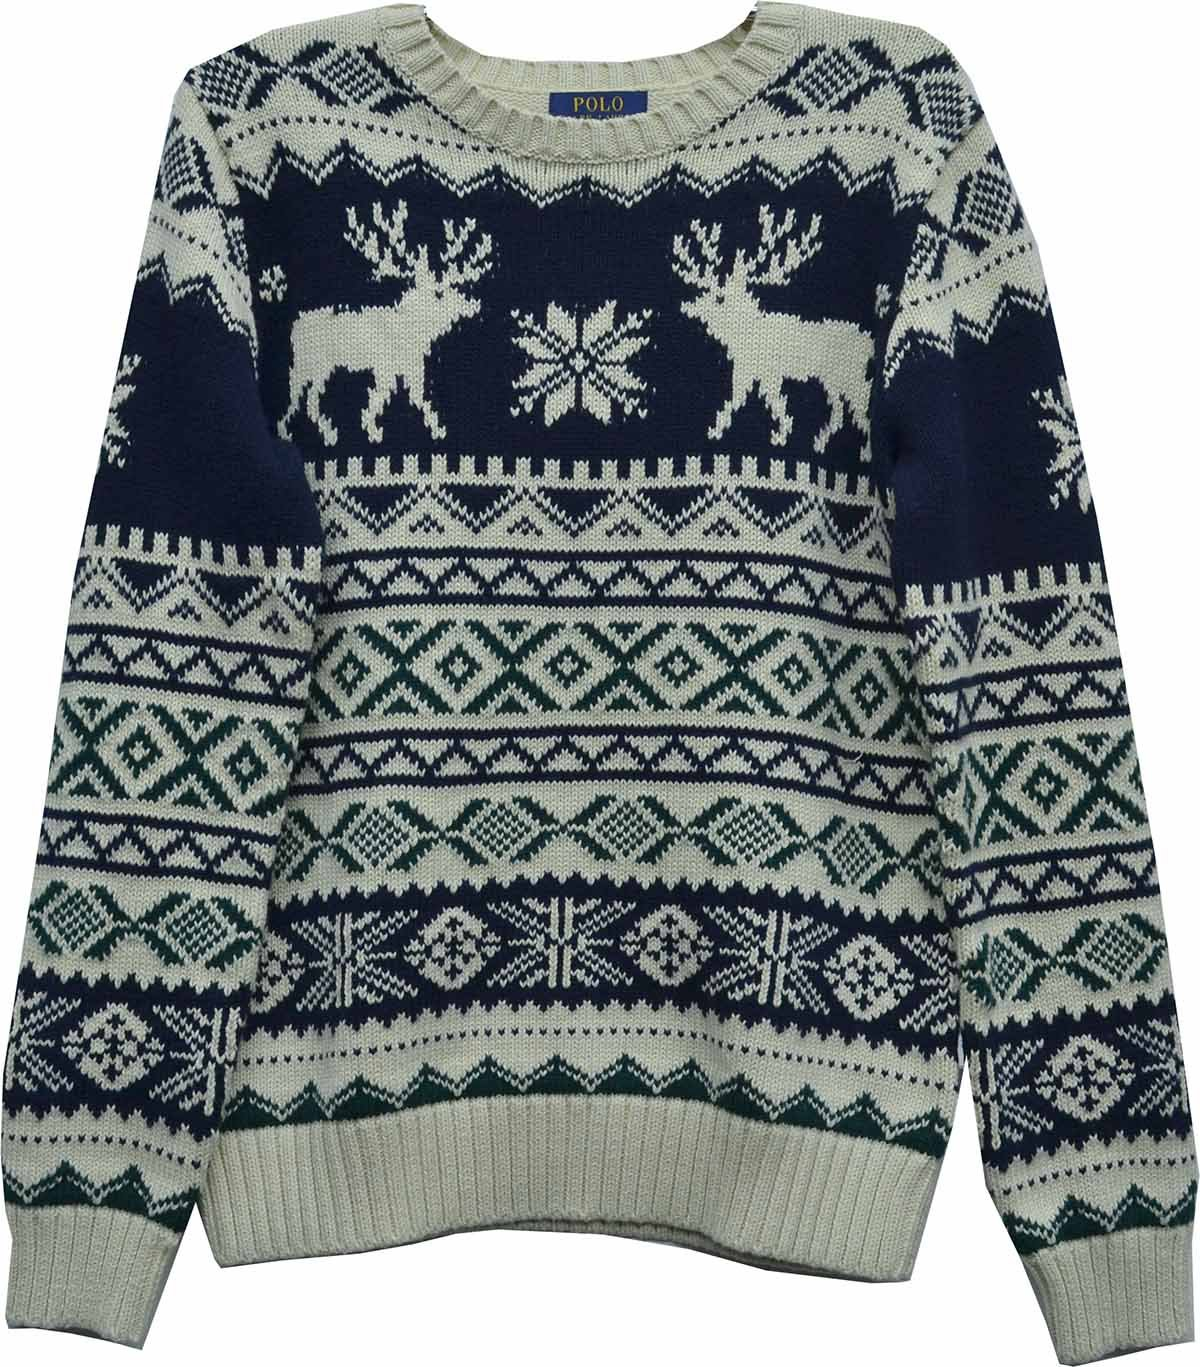 Polo Ralph Lauren Boy's Holiday Sweater Cafeaulait X-Large (18-20)